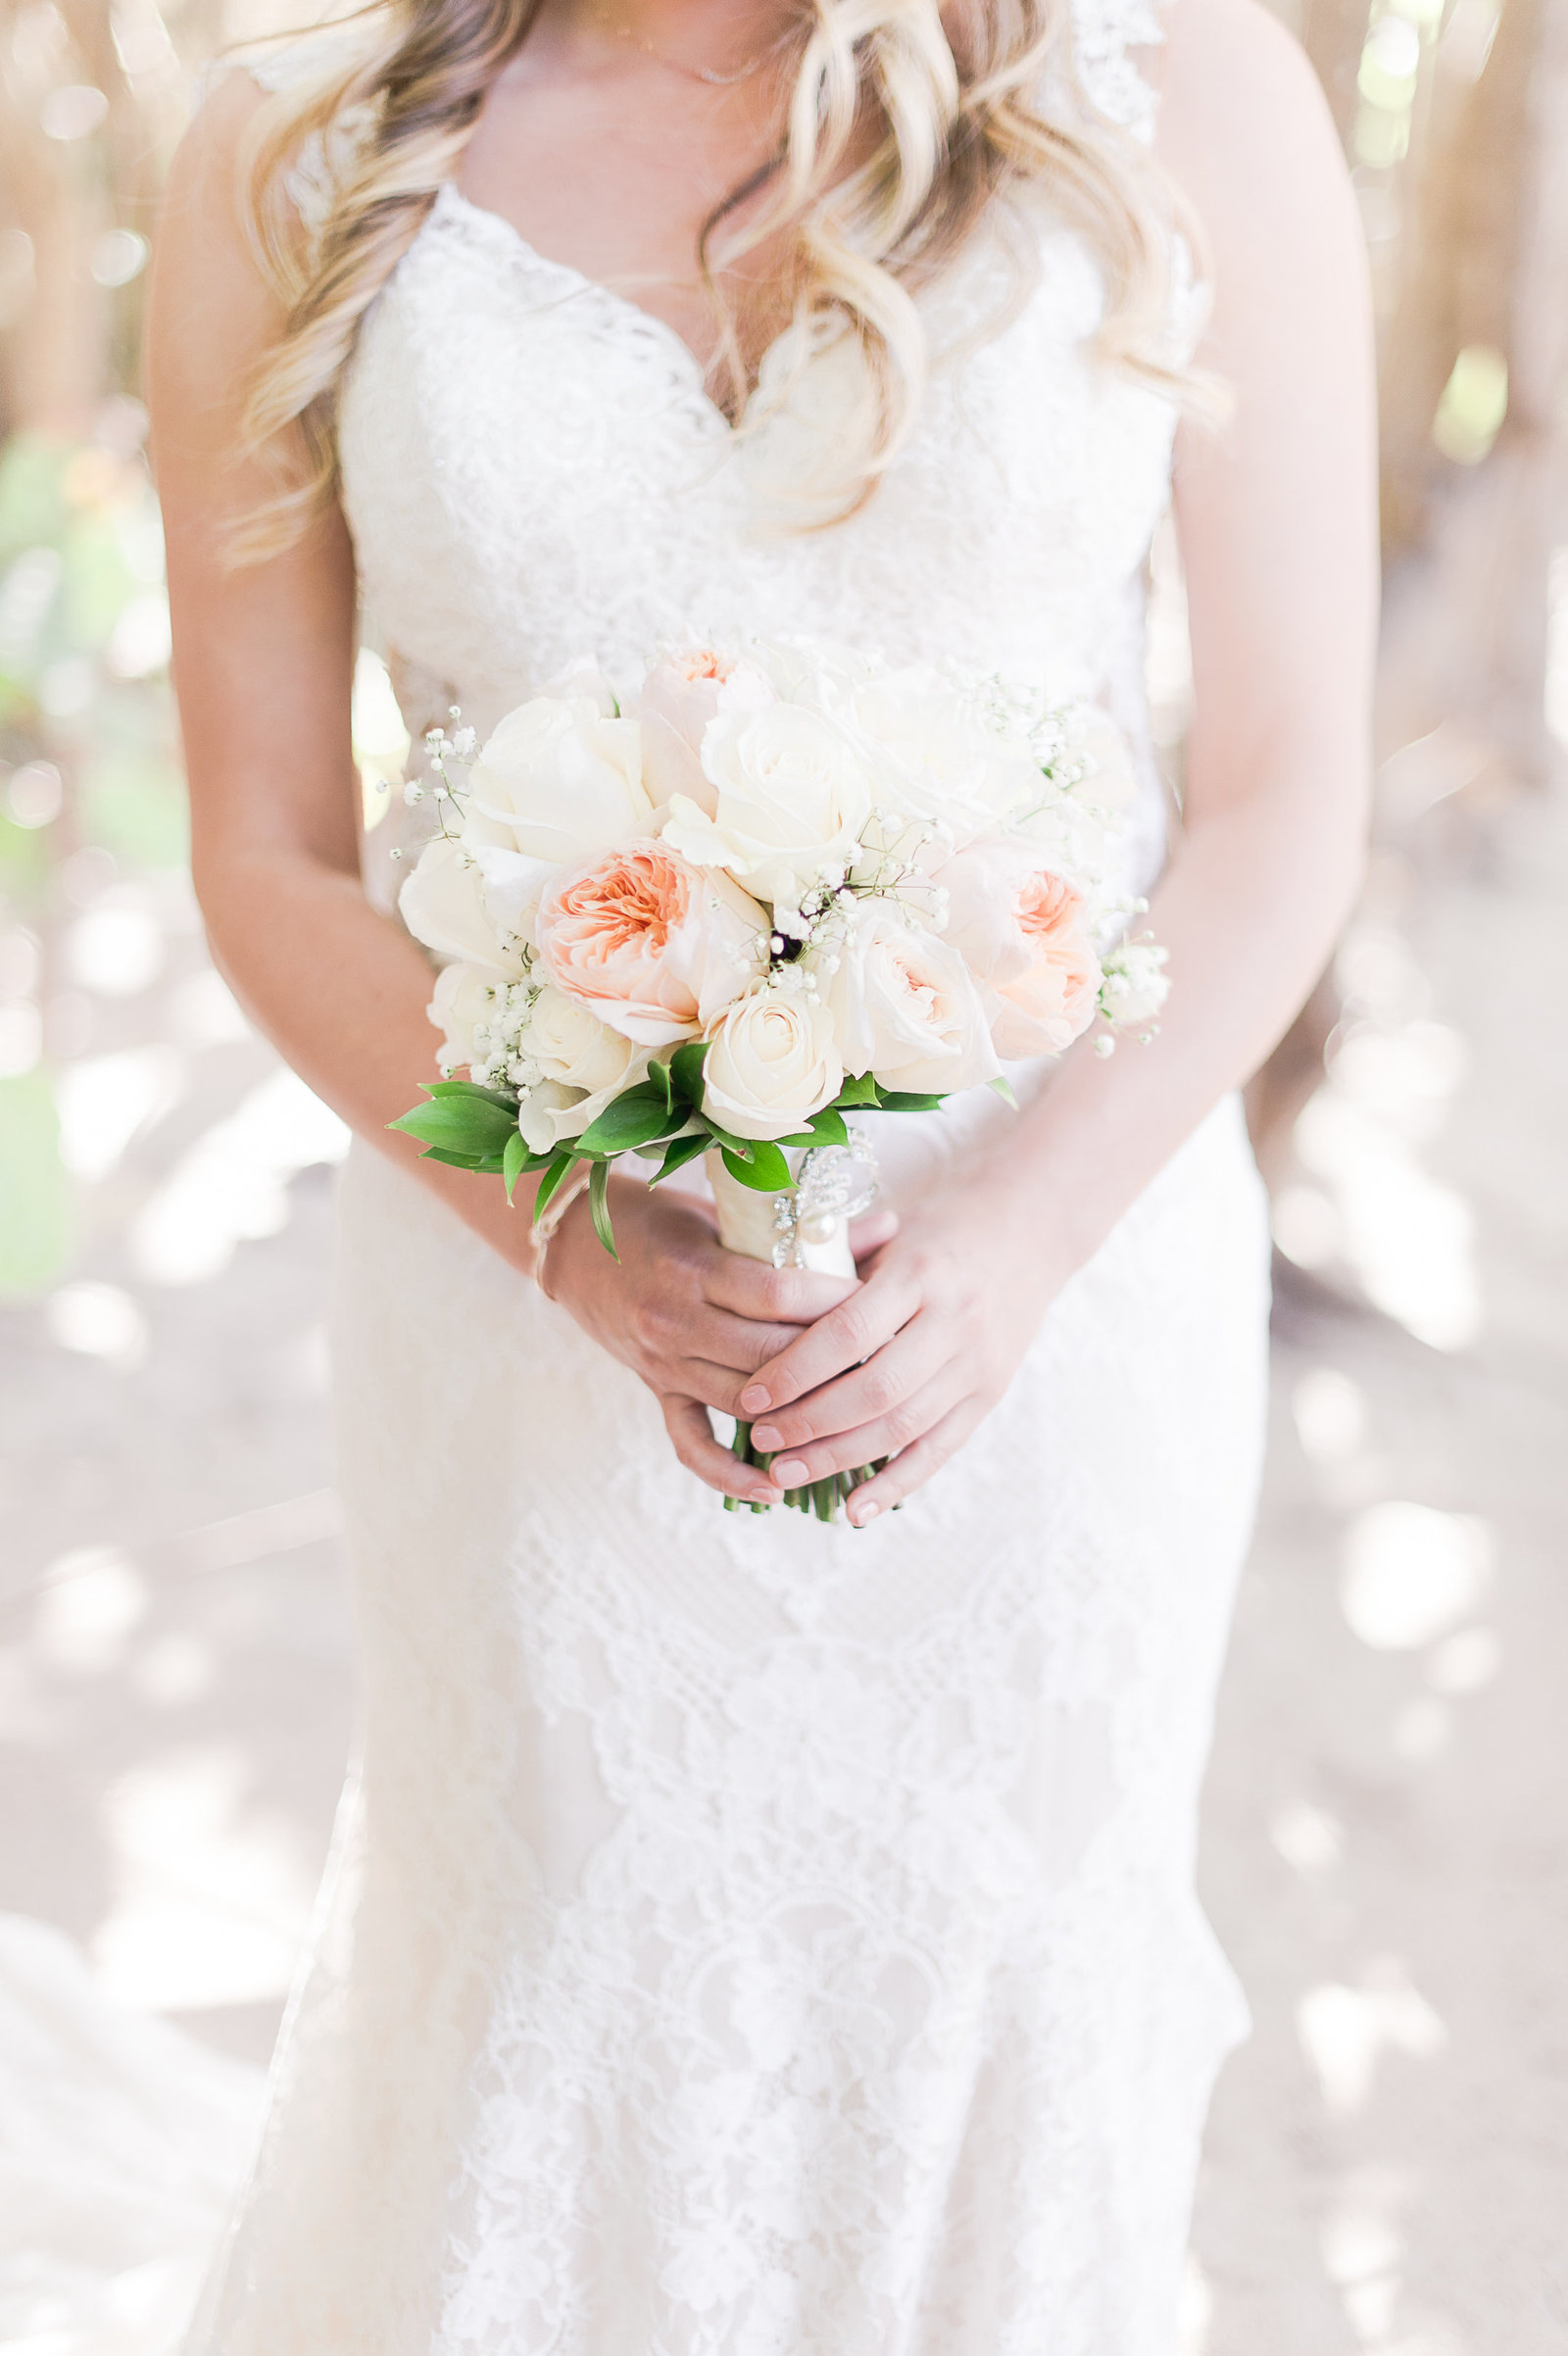 Brides Bouquet - Hilton Singer Island Wedding  - Palm Beach Wedding Photography by Palm Beach Photography, Inc.